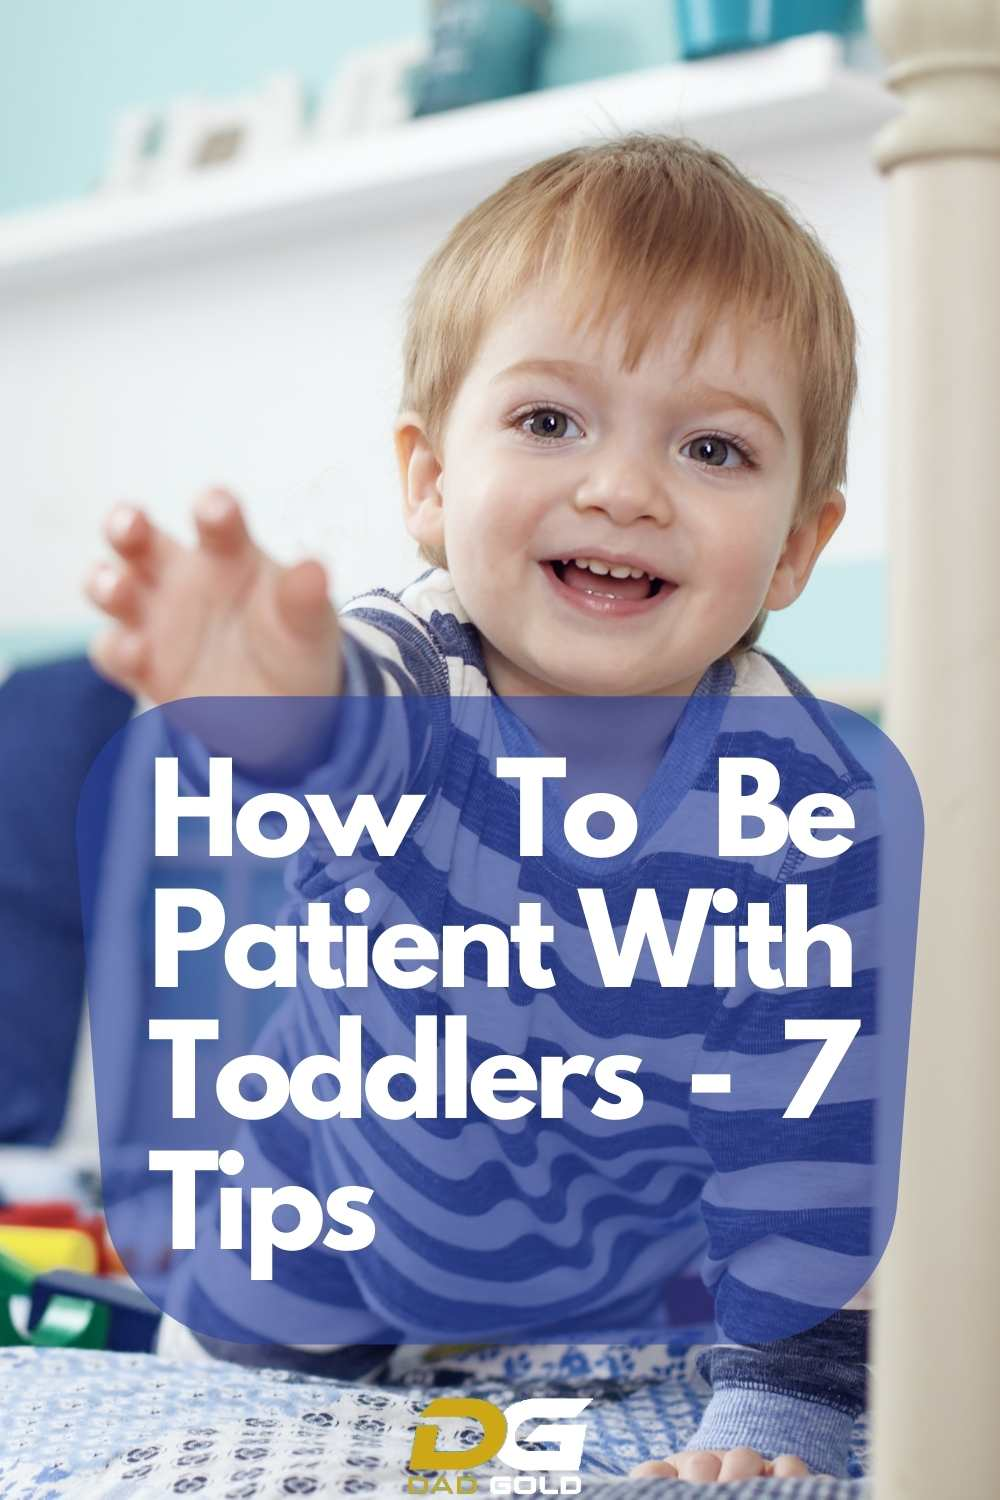 How To Be Patient With Toddlers - 7 Tips